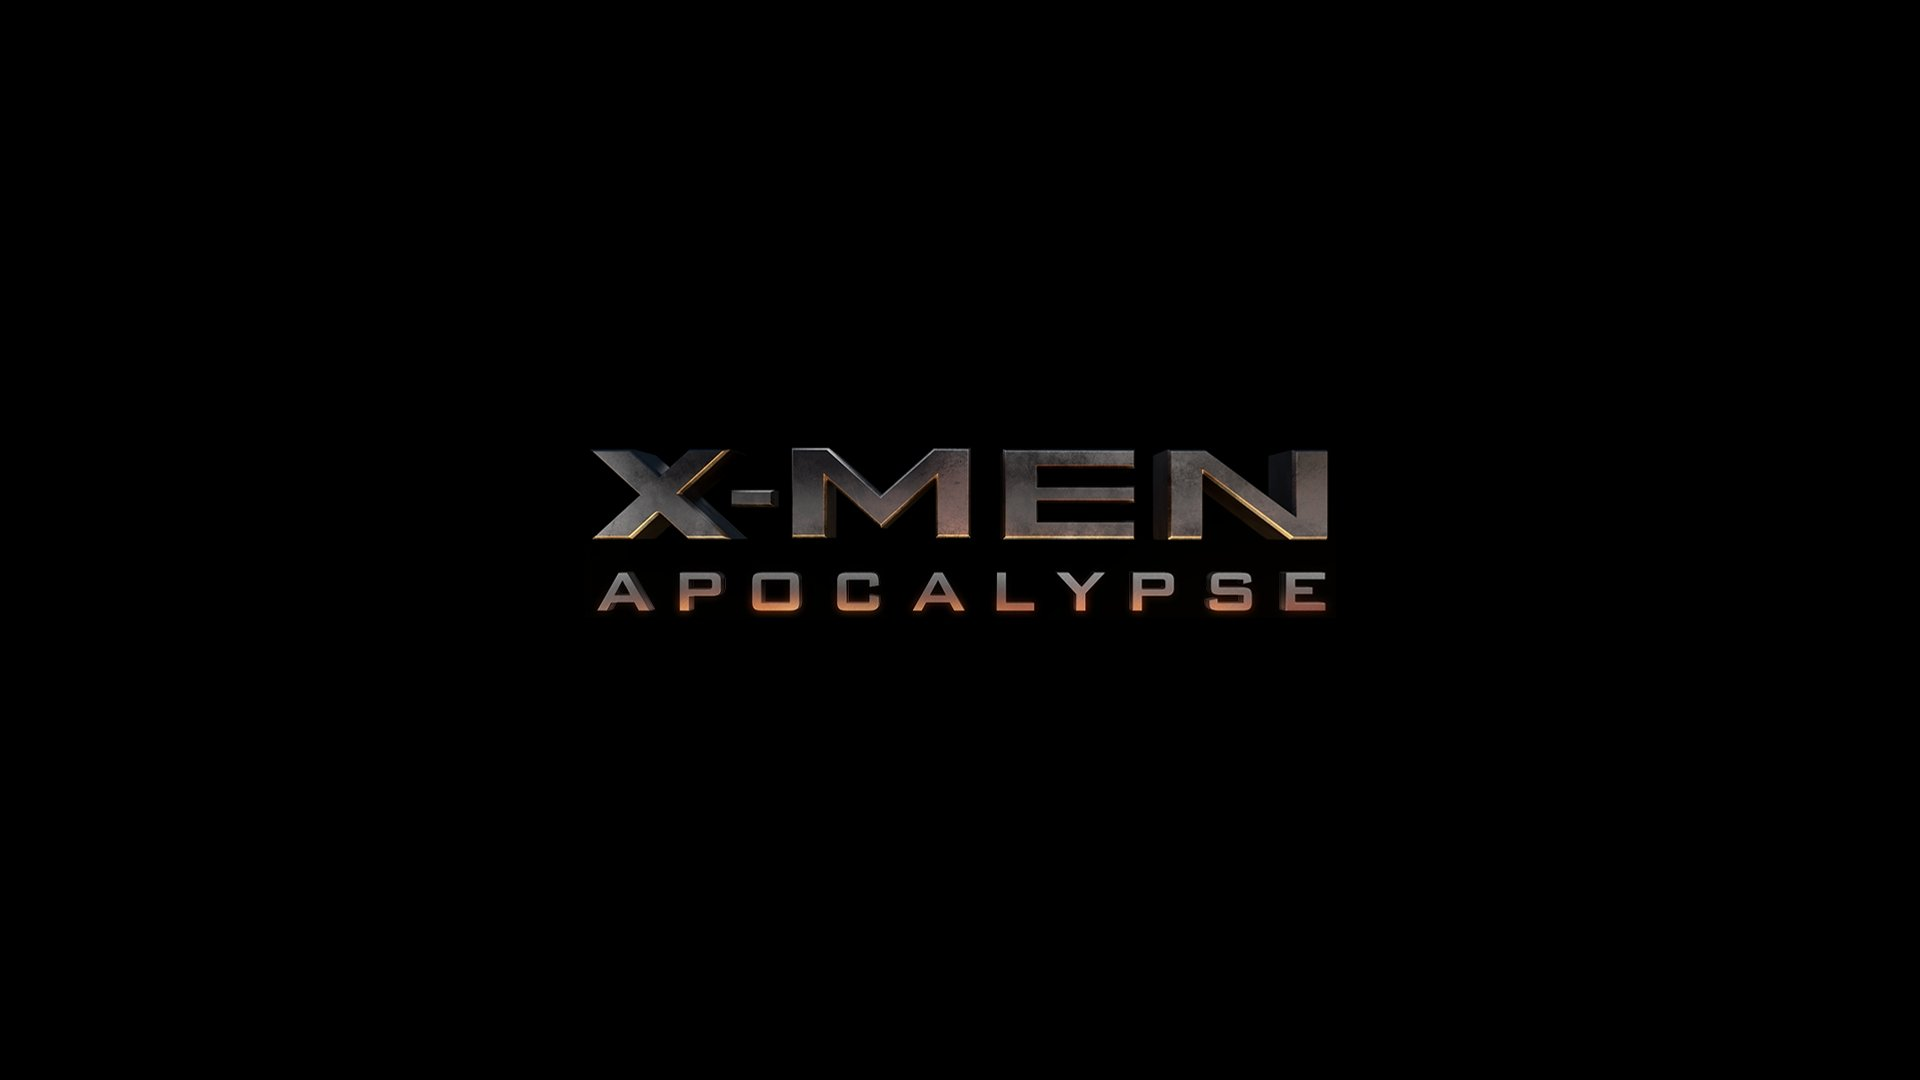 Men Logo Hd x men apocalypse wallpapers high resolution and quality 1920x1080